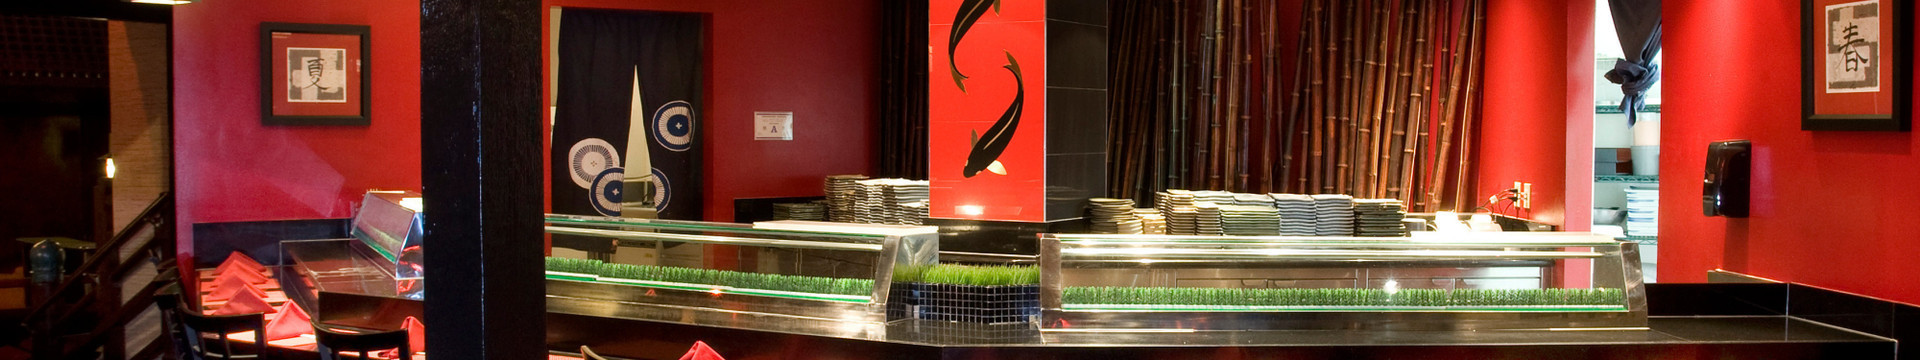 Sushi at our Las Vegas Hotel and Casino | Rikki Tiki Sushi